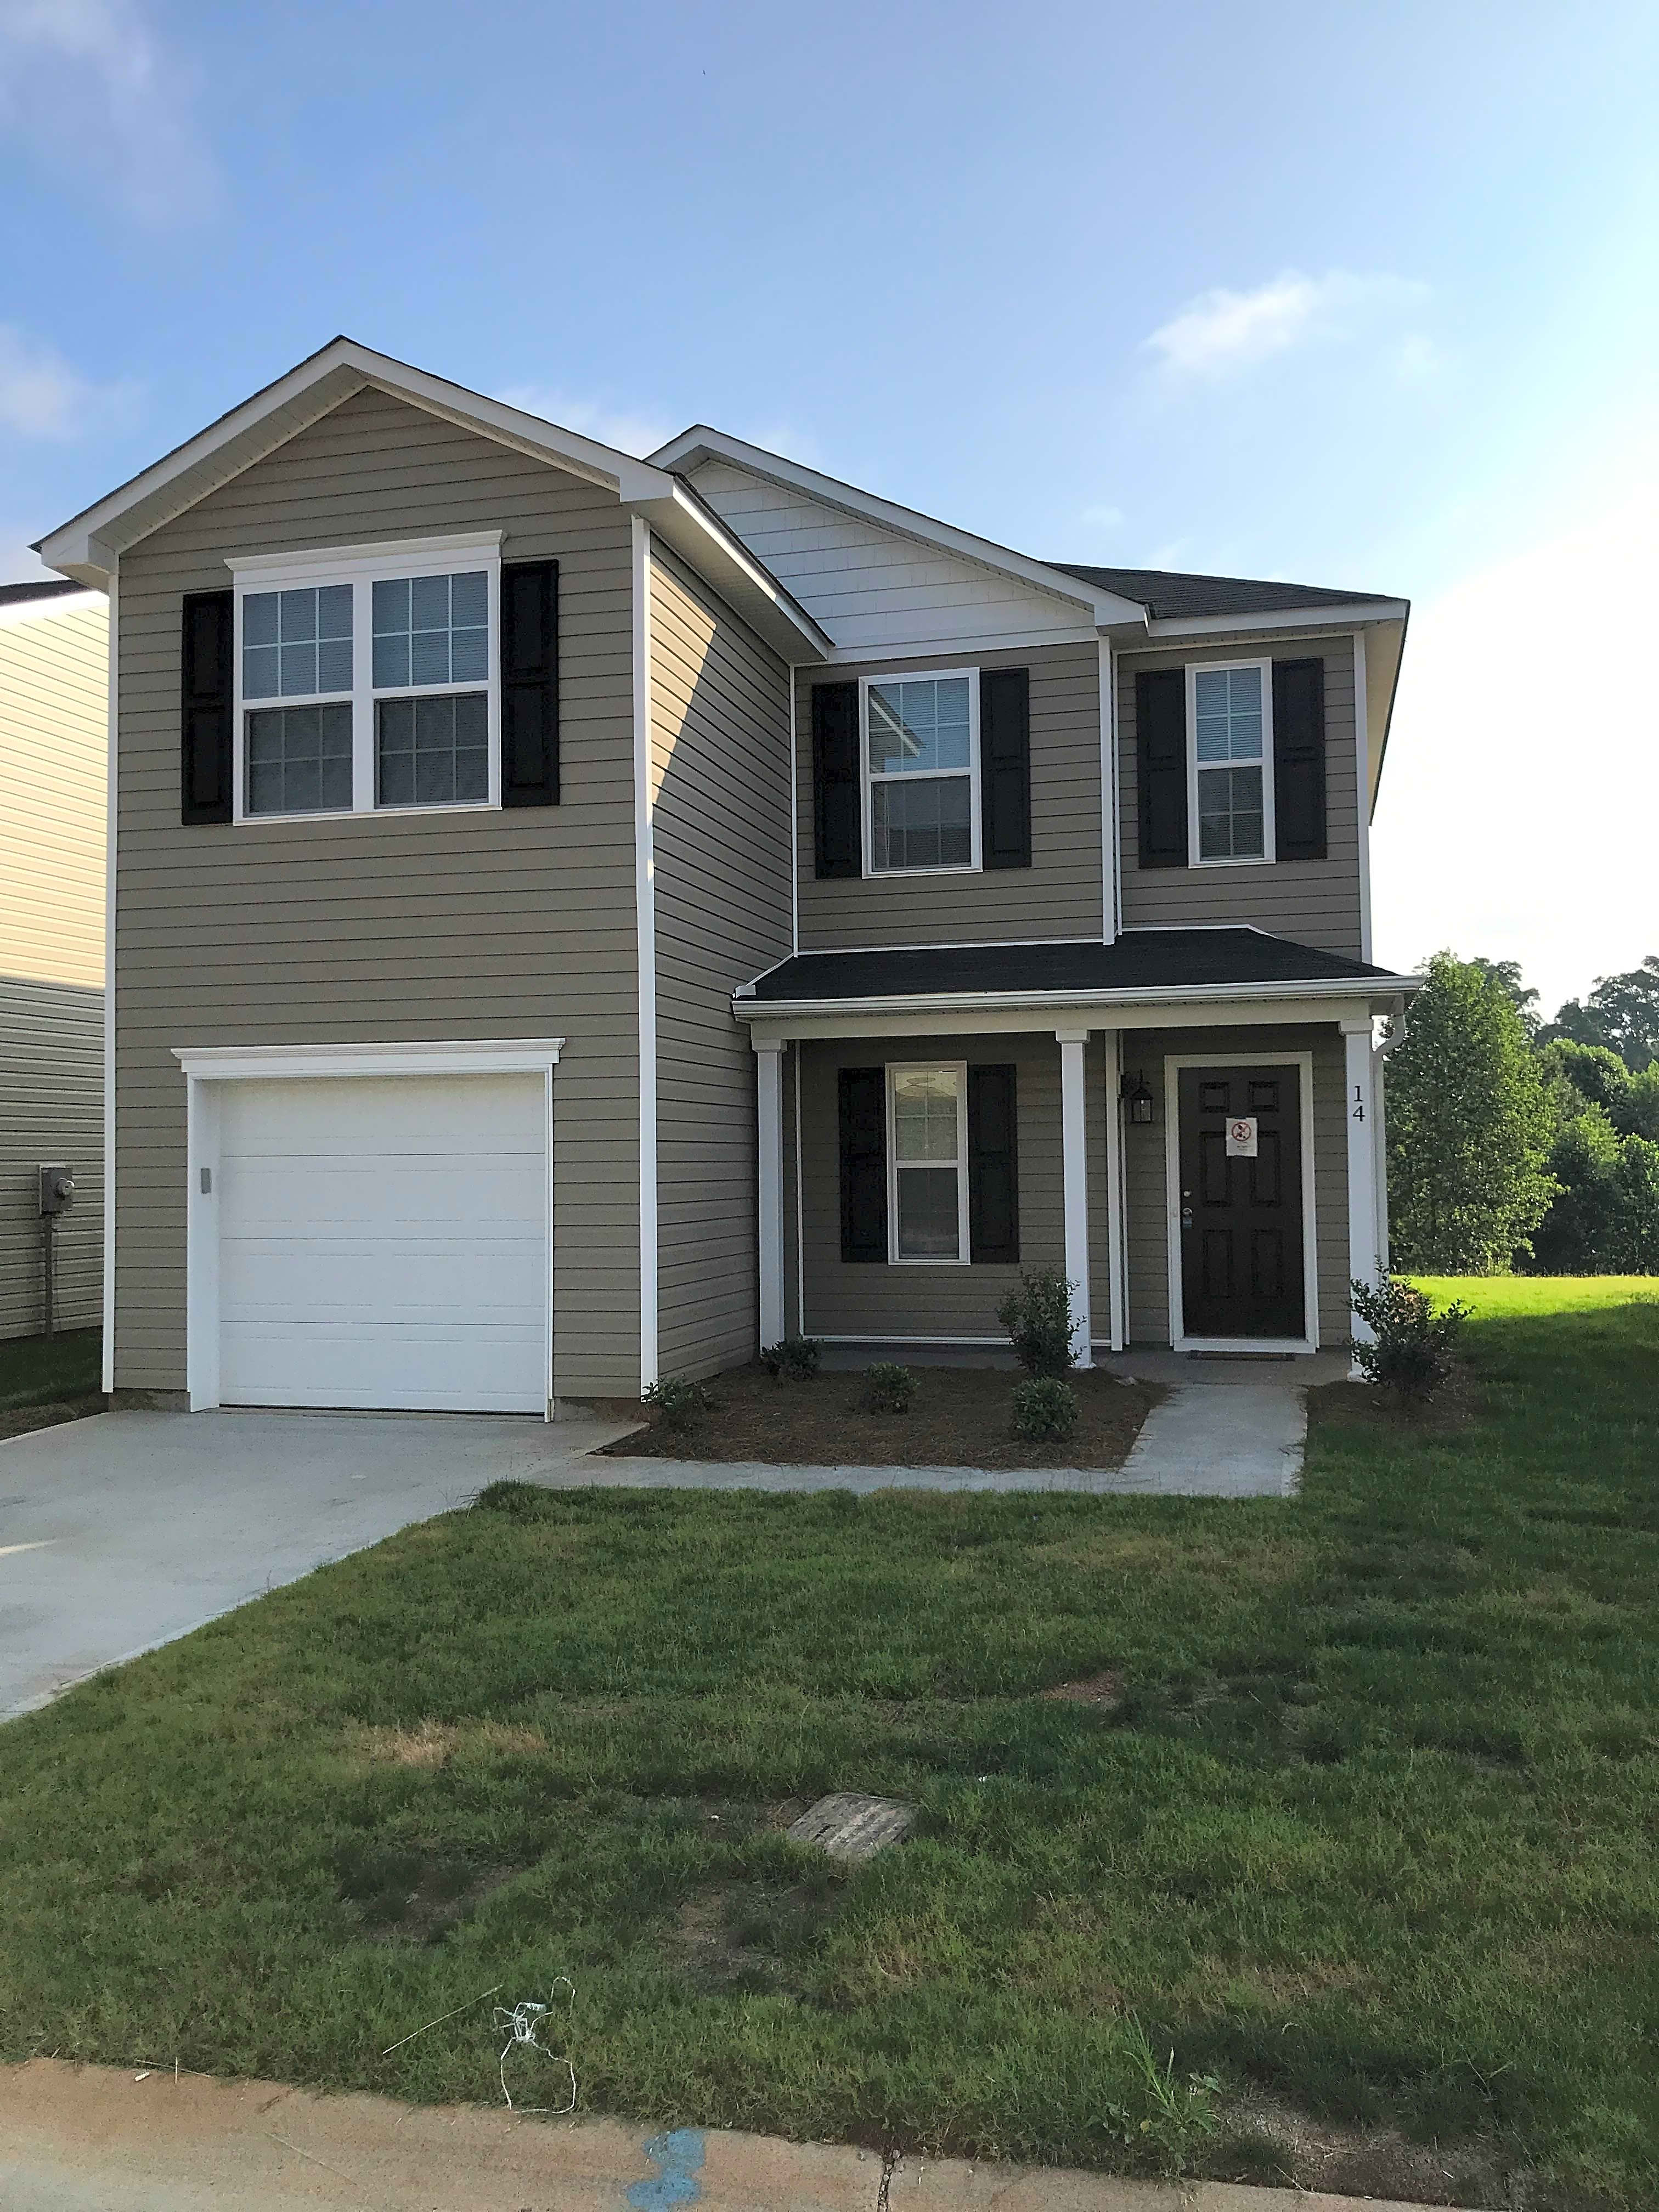 Condo for Rent in Greer